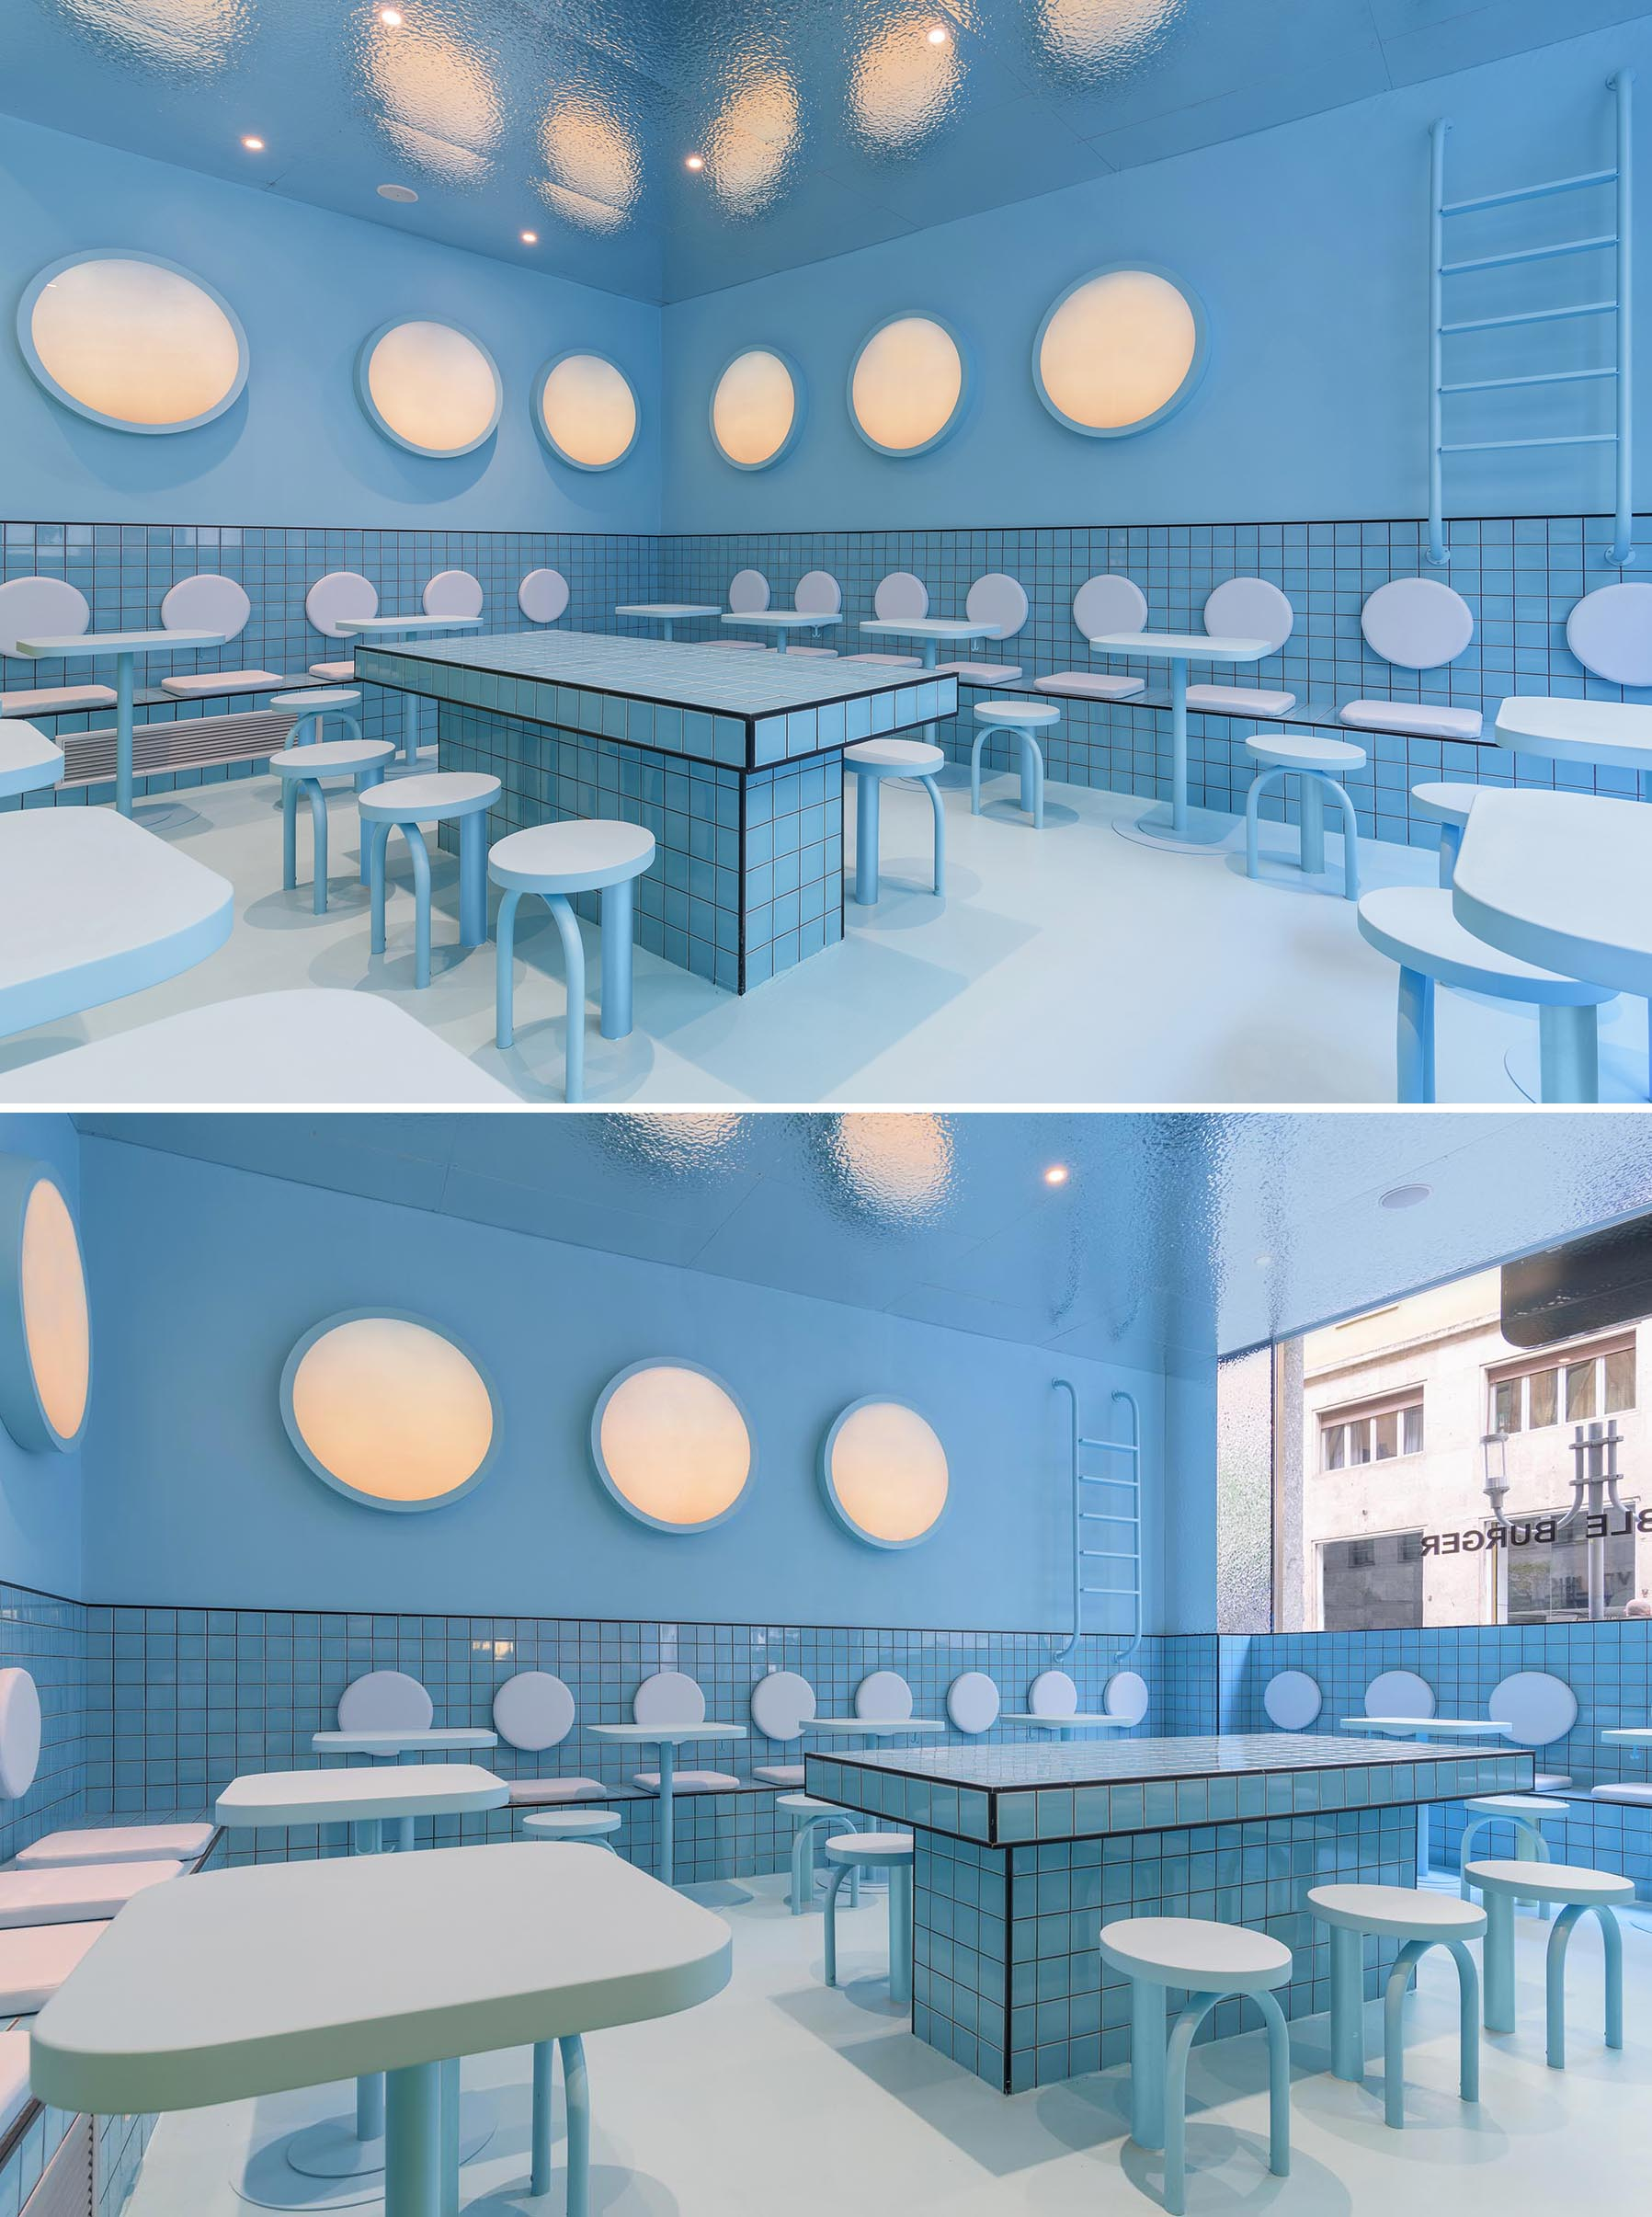 A modern restaurant interior with blue seating area inspired by a swimming pool.